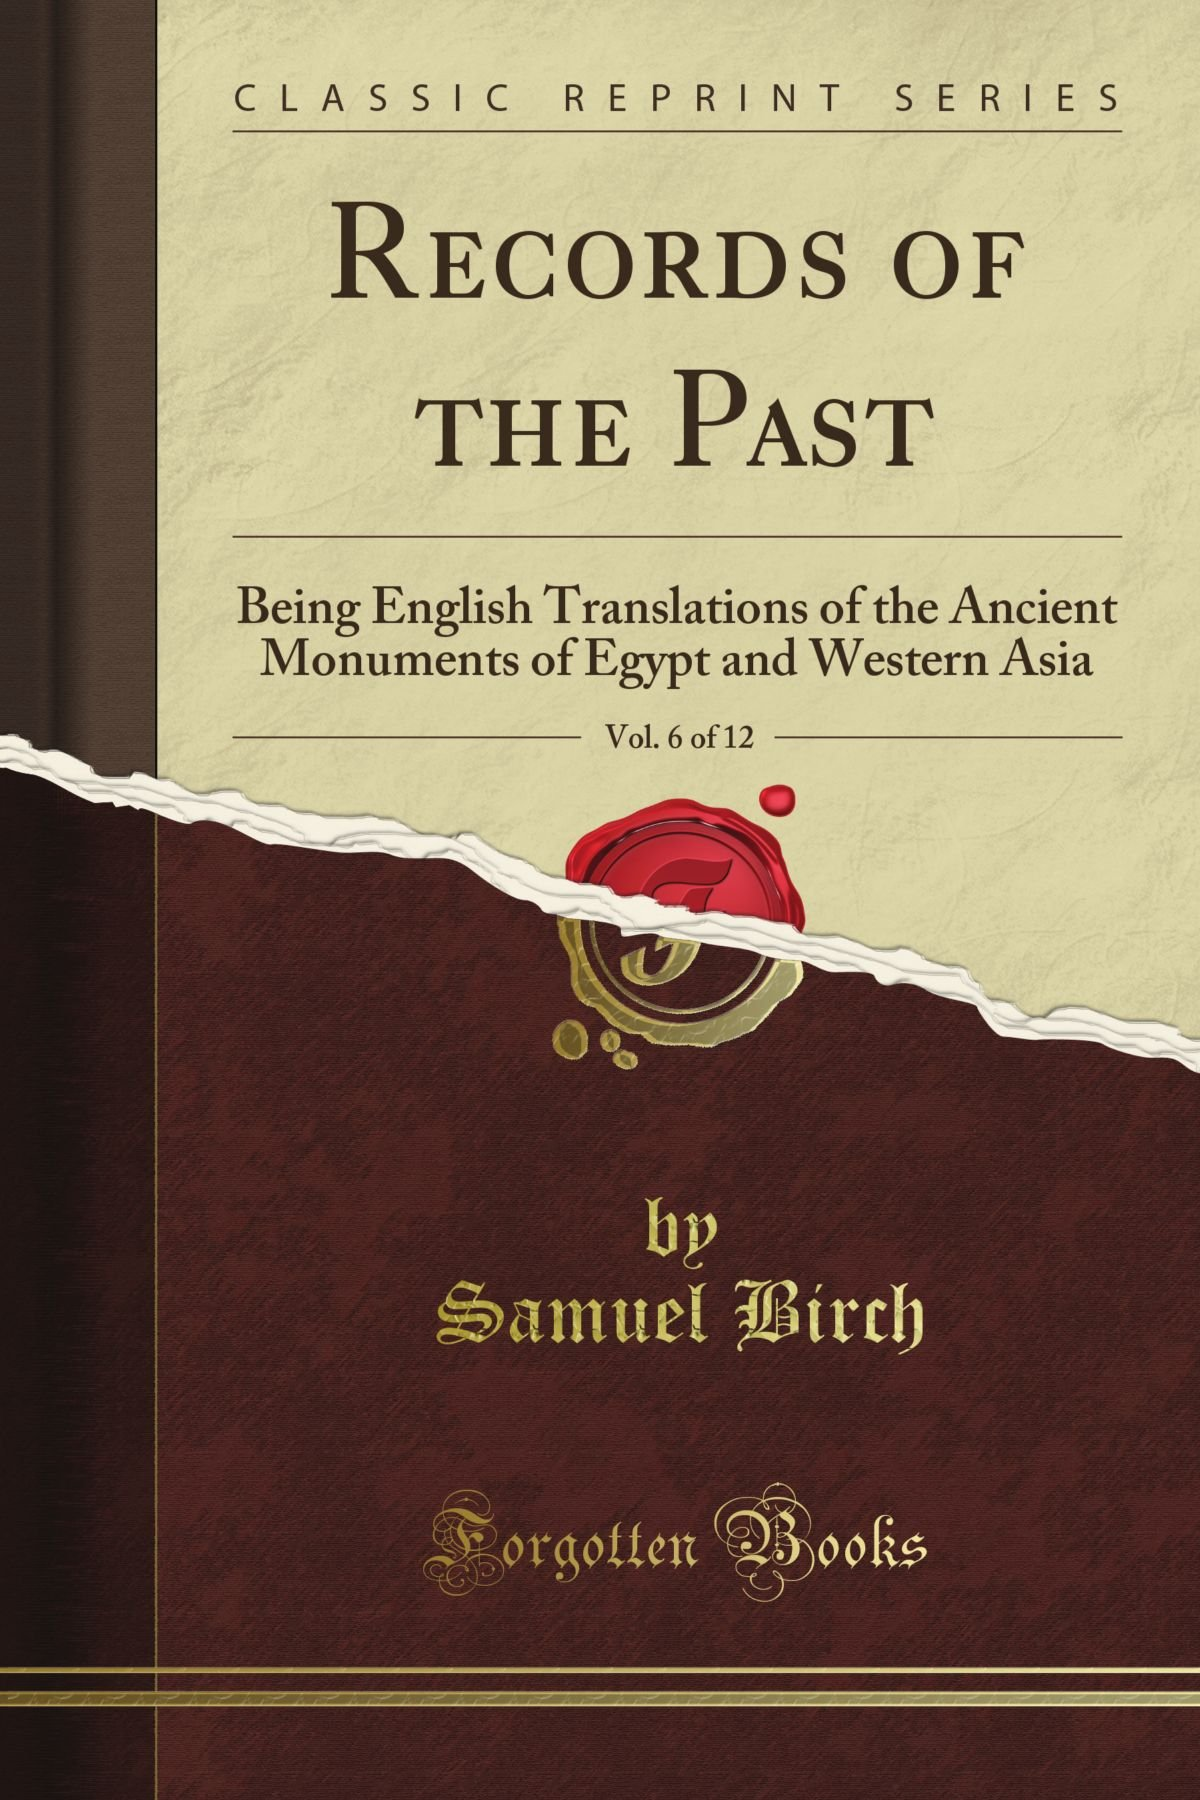 Records of the Past: Being English Translations of the Ancient Monuments of Egypt and Western Asia, Published Under the Sanction of the Society of Biblical Archaeology, Vol. 6 (Classic Reprint) pdf